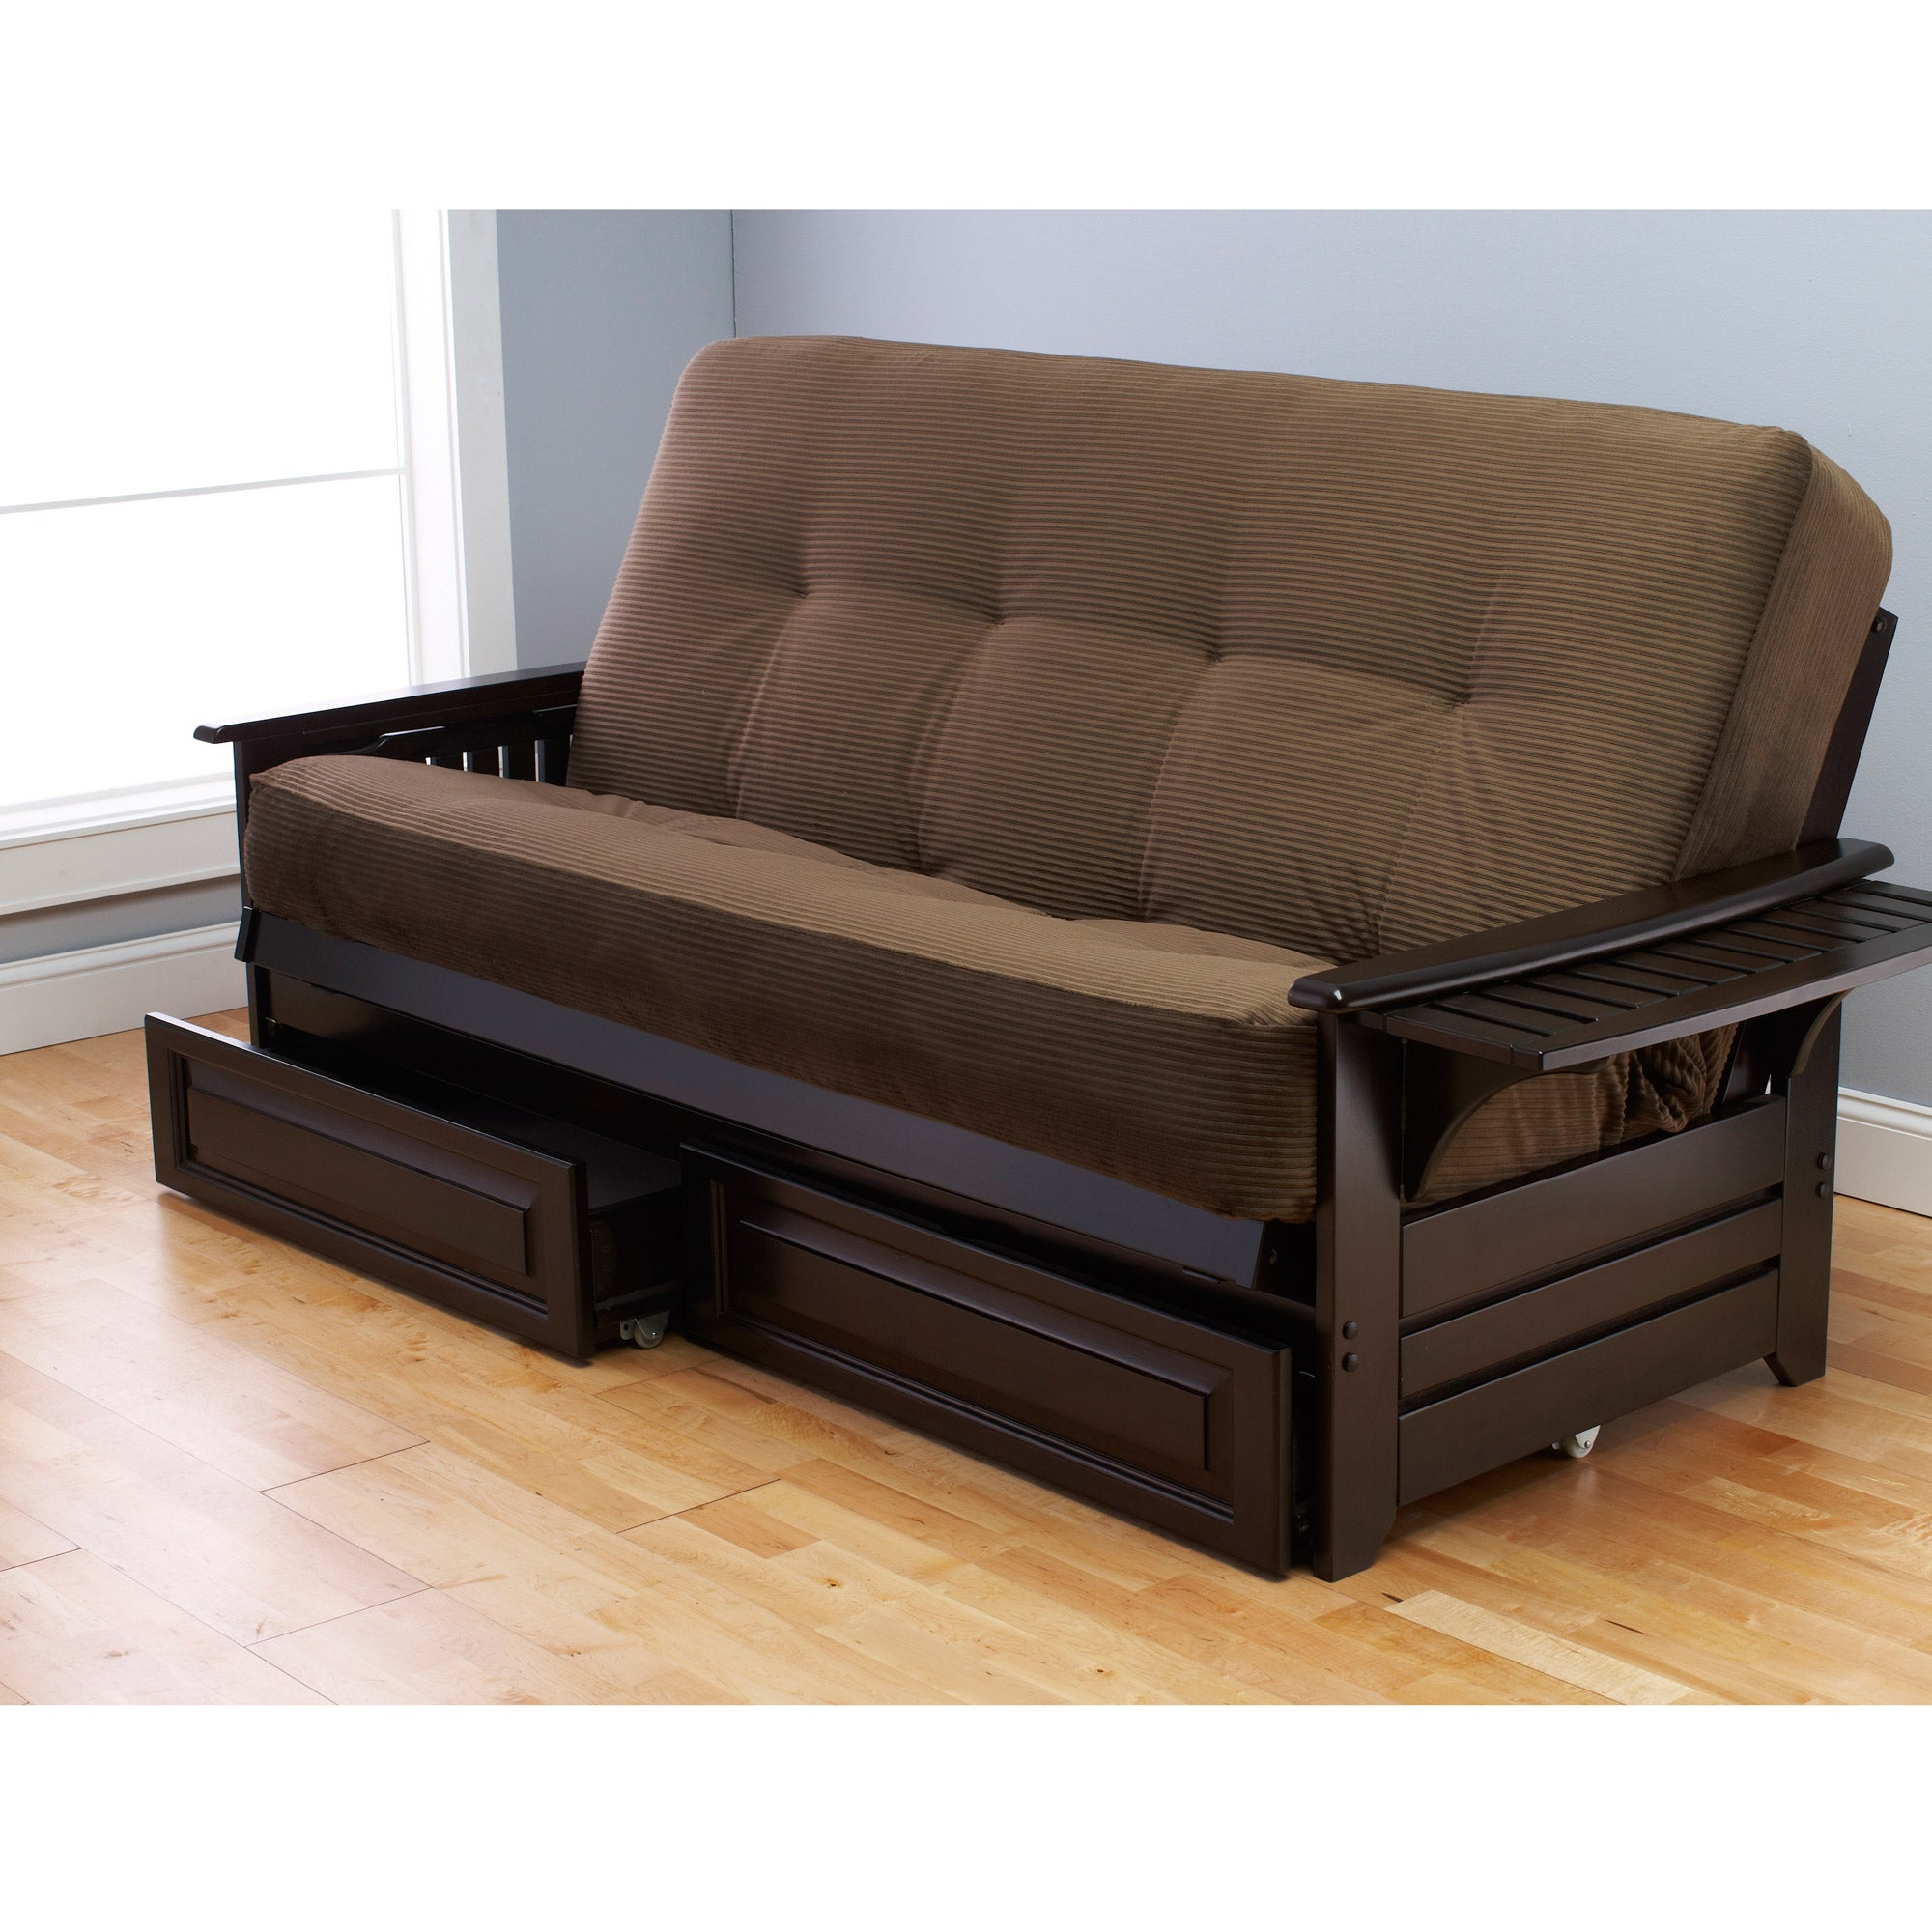 Ali Phonics Multi-flex Espresso Wood Futon Frame, Drawers and Mattress Set at Sears.com